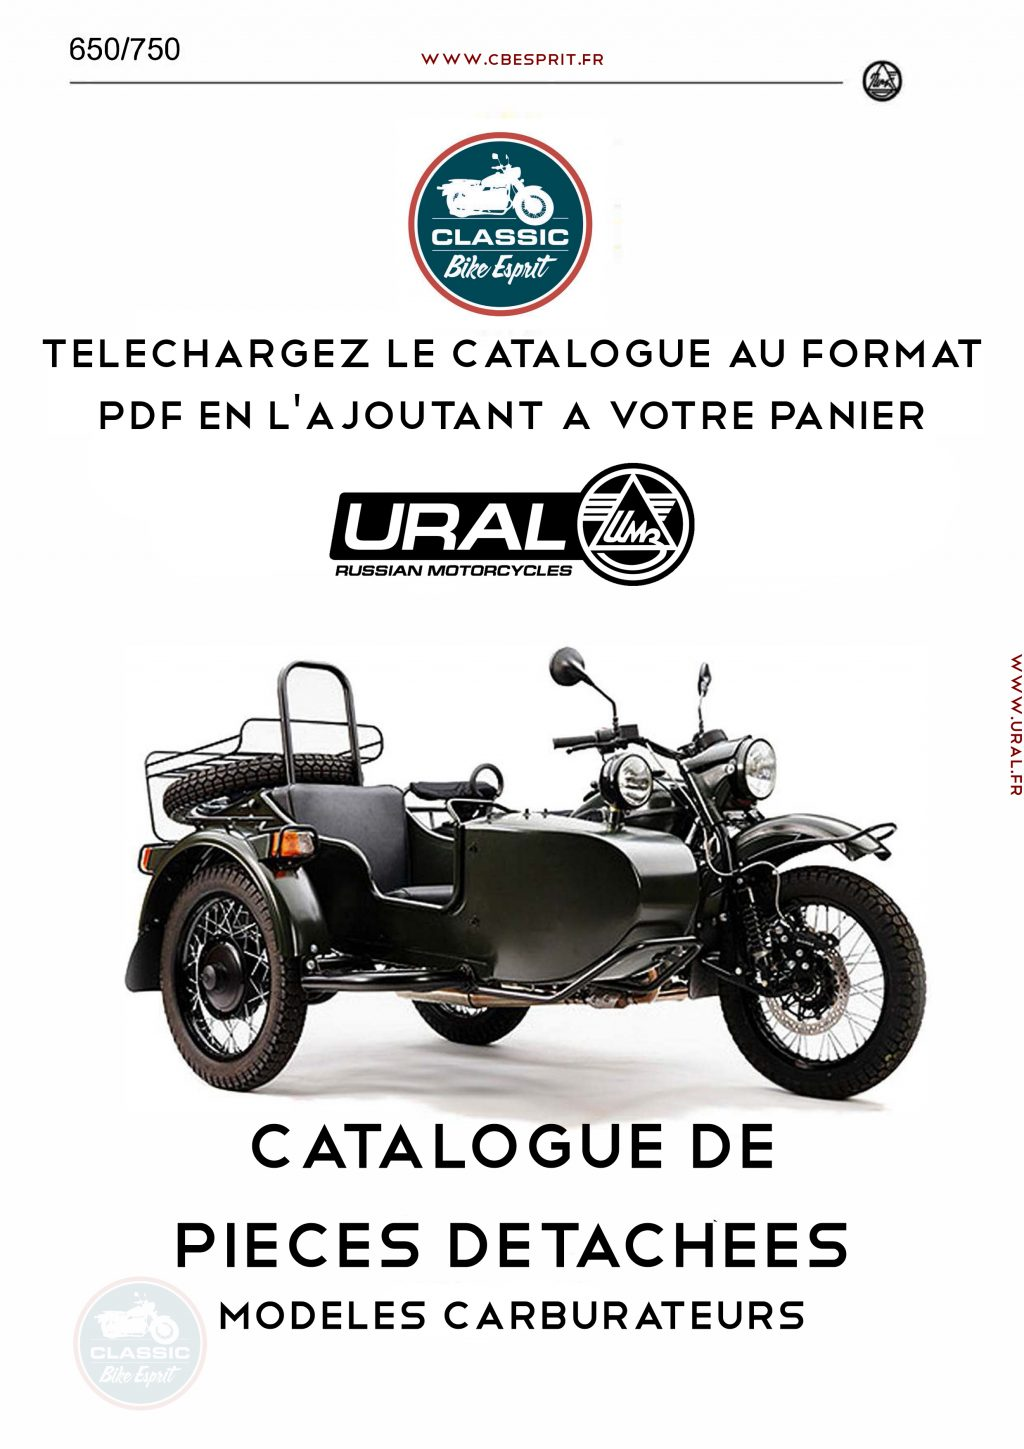 catalogue pieces d tach es ural modeles carburateurs classic bike esprit. Black Bedroom Furniture Sets. Home Design Ideas